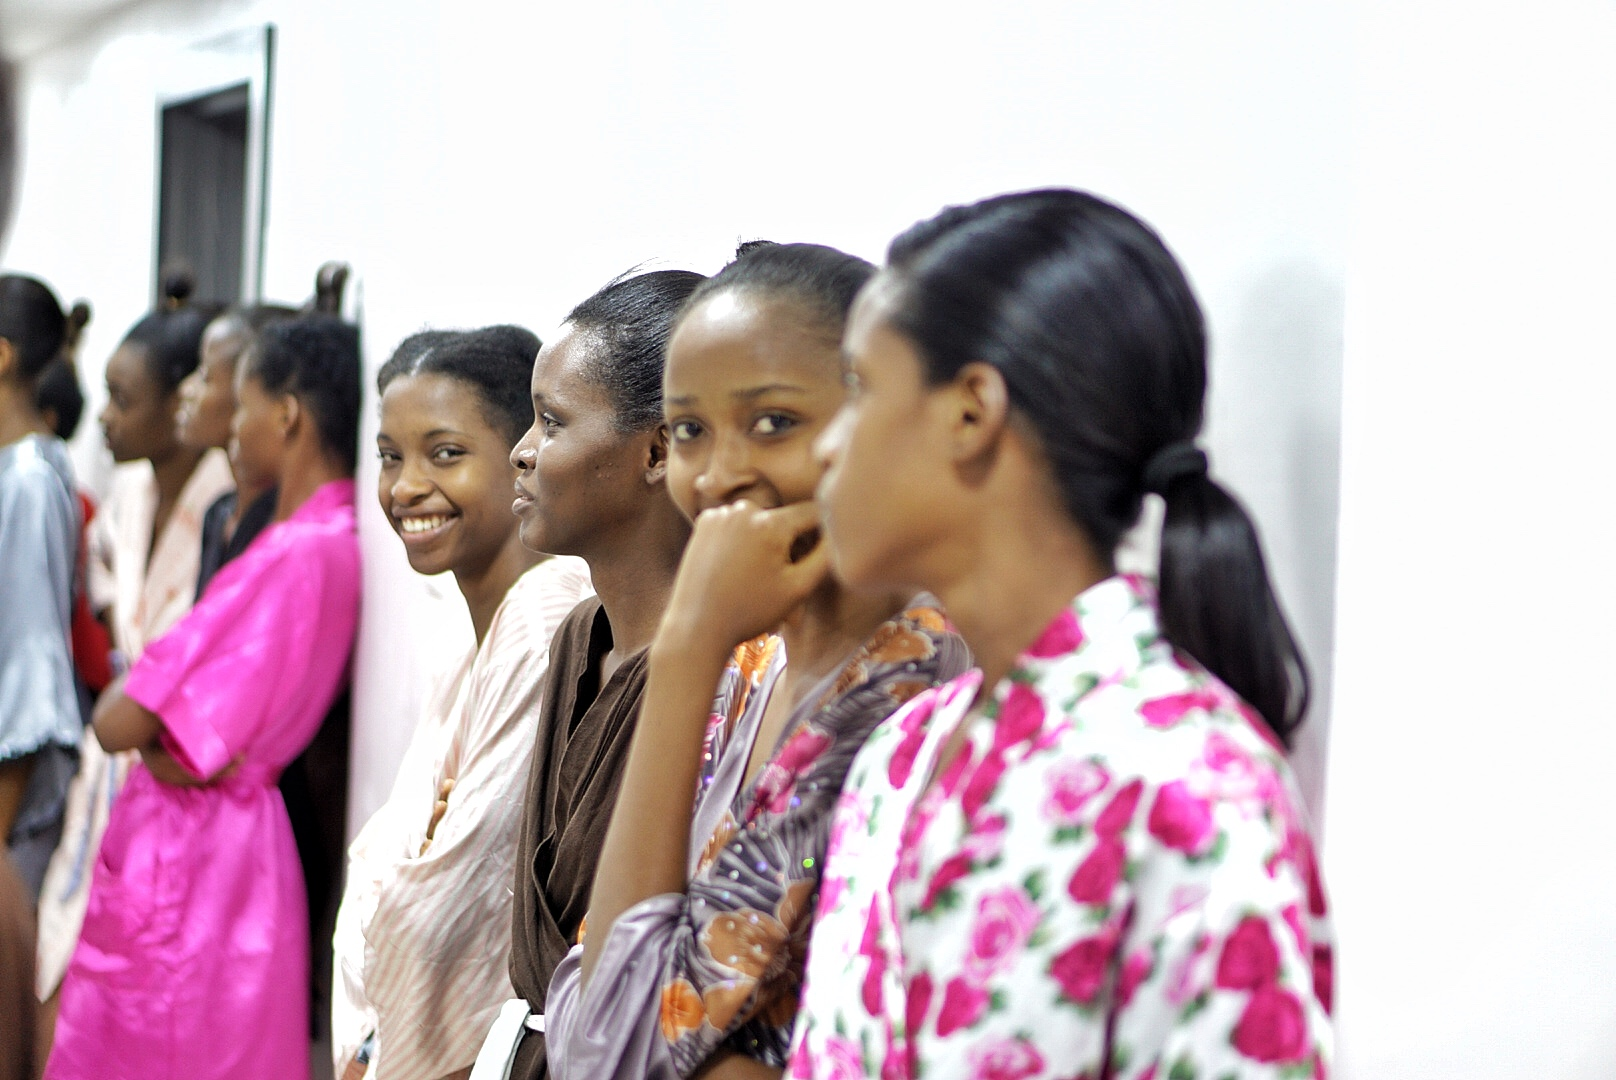 Models in tone during fittings at gtbank fashion weekend 2017